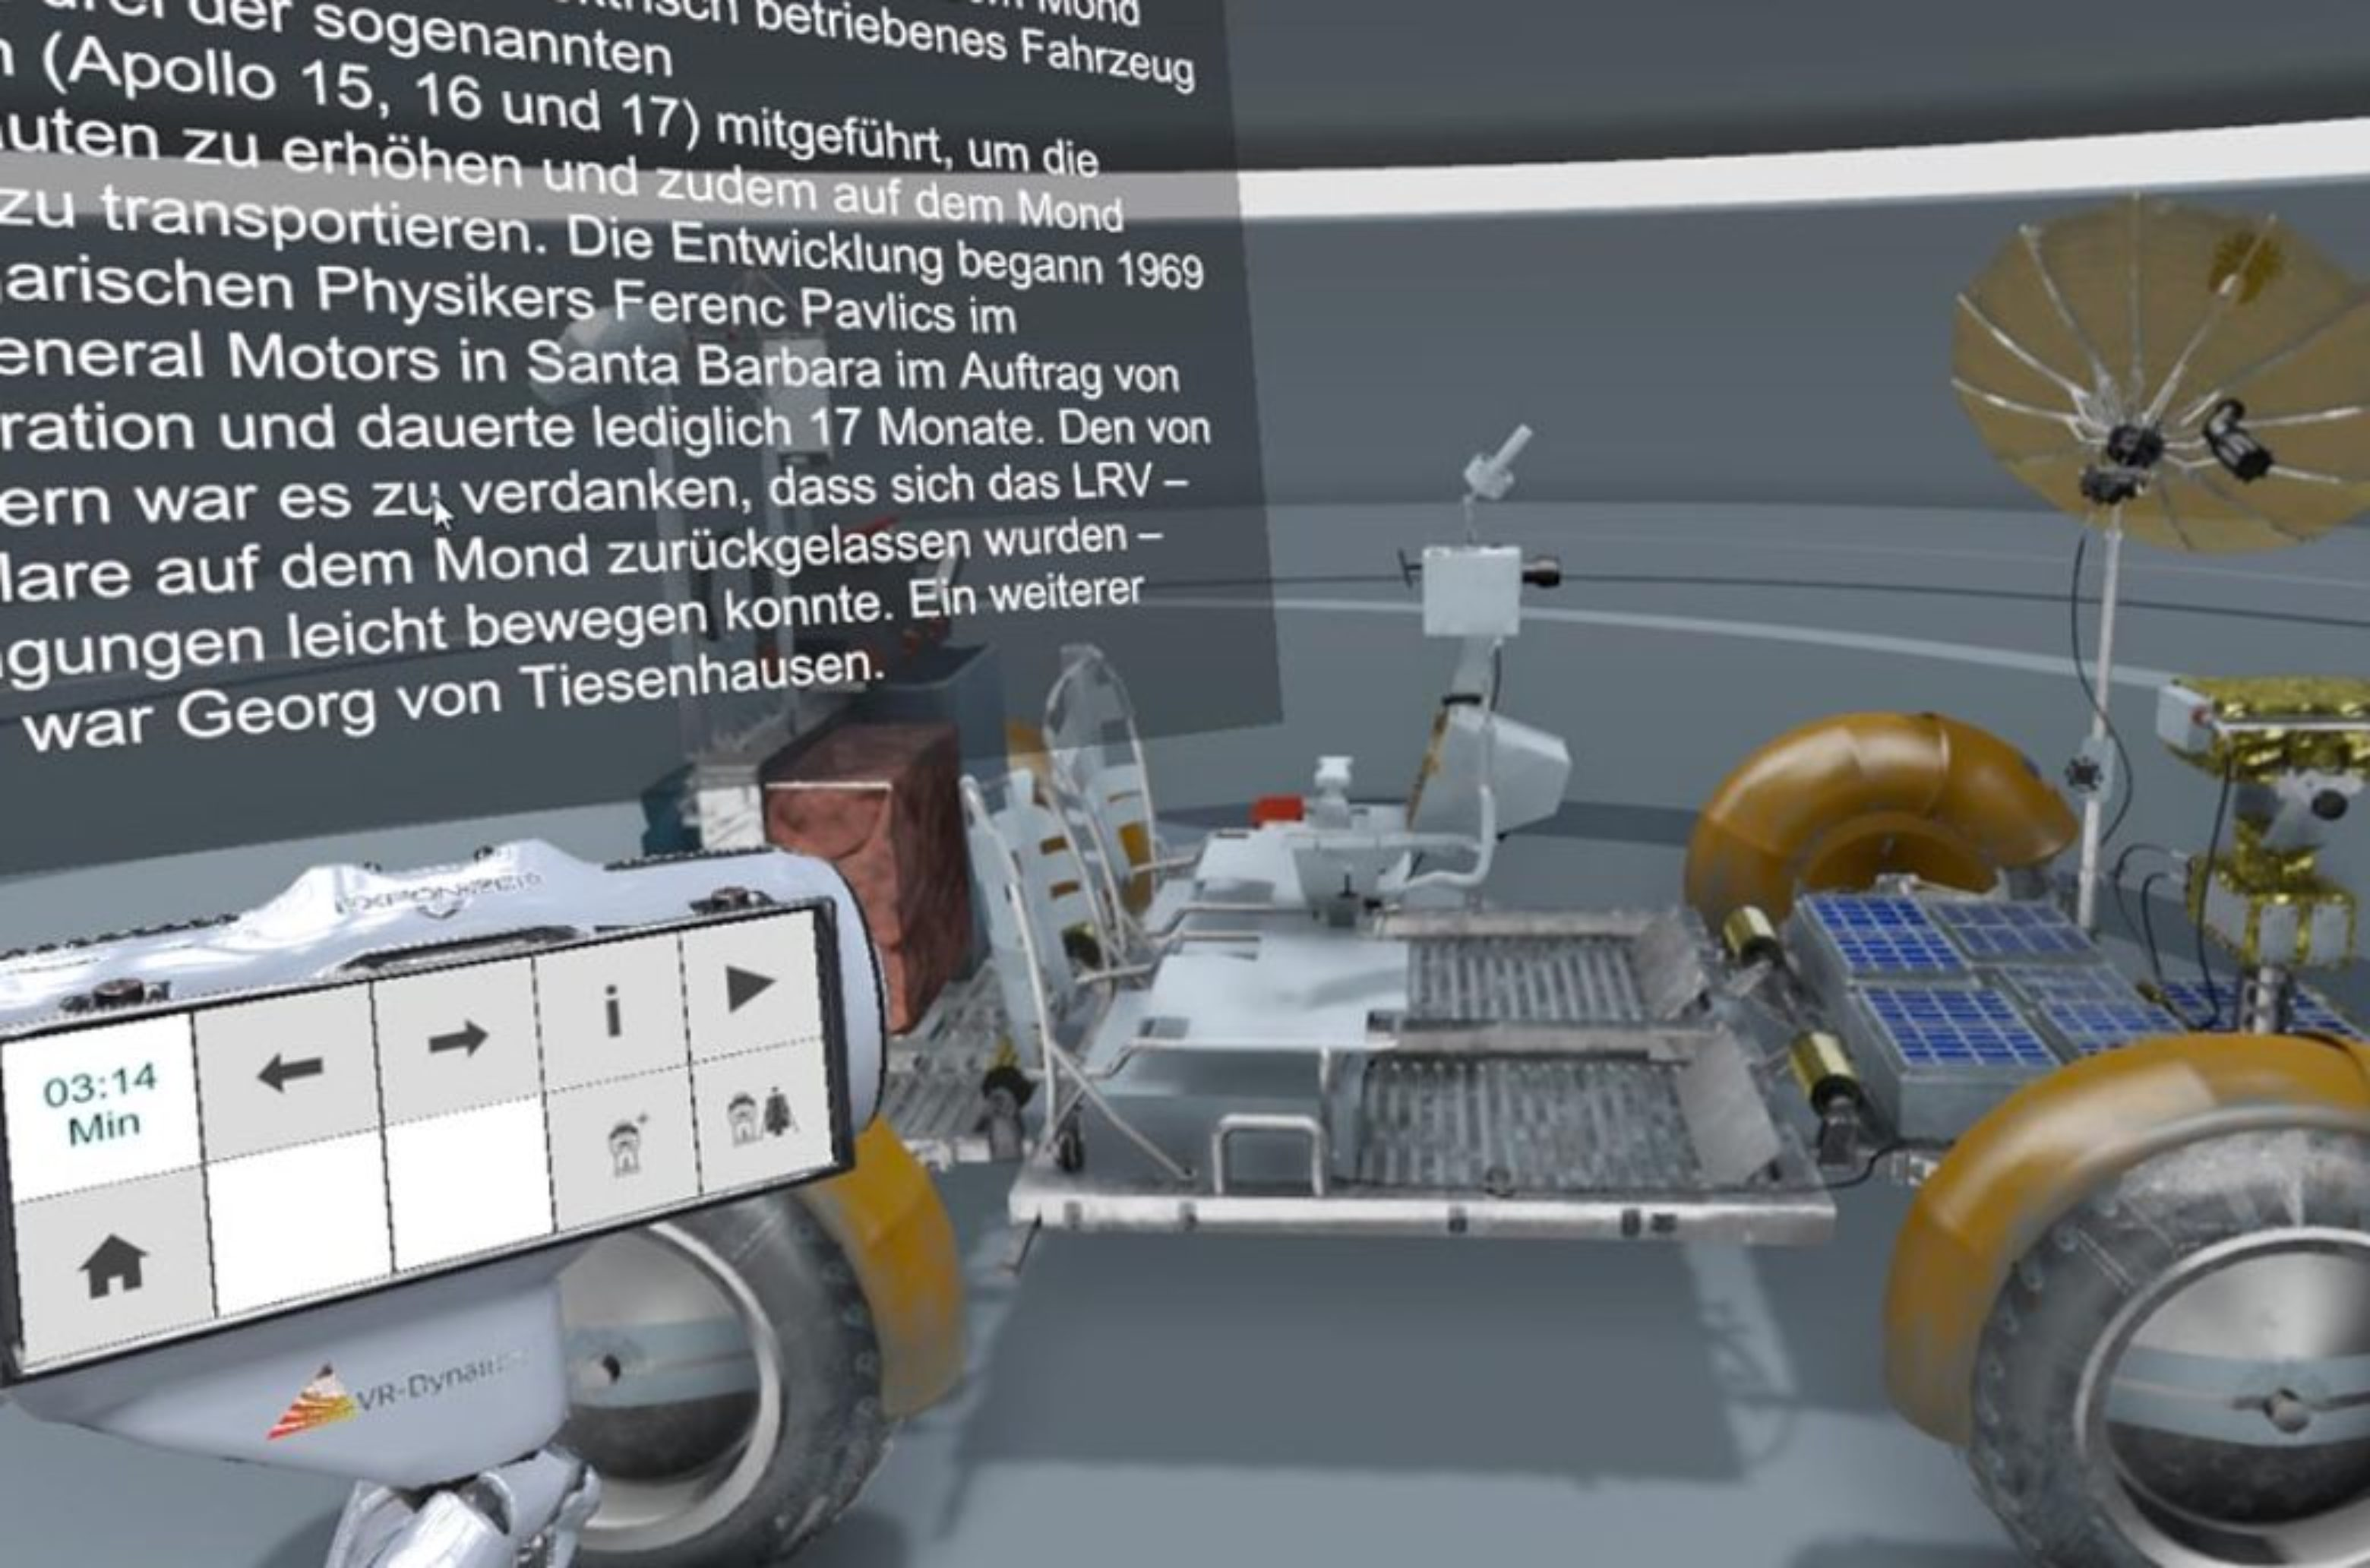 Demo version of ExpoDeck: Presentation of the digitized objects in a virtual exhibition space